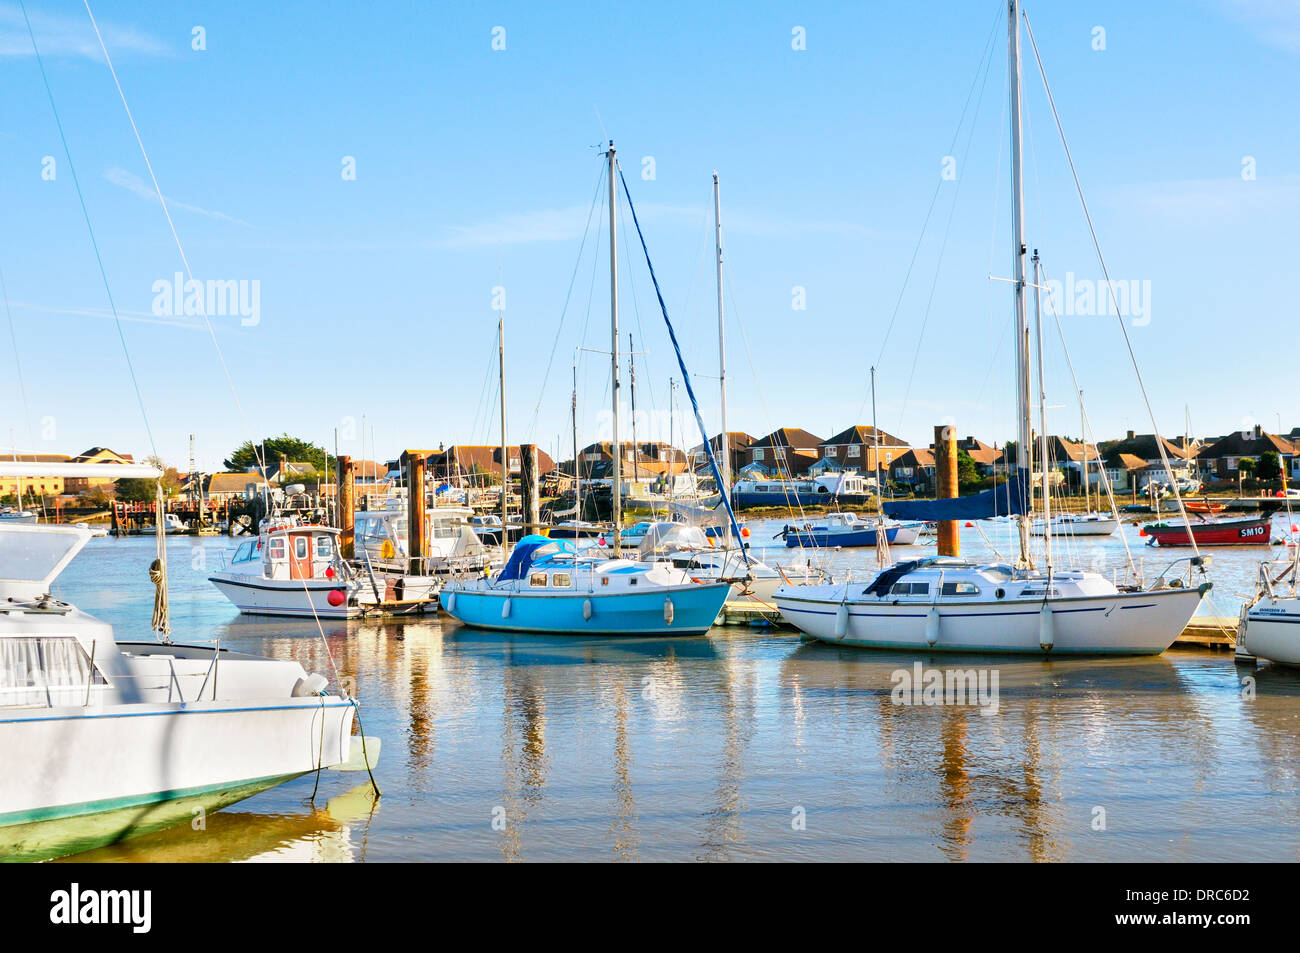 Boats on the River Adur, Shoreham-by-Sea, West Sussex, England, UK - Stock Image